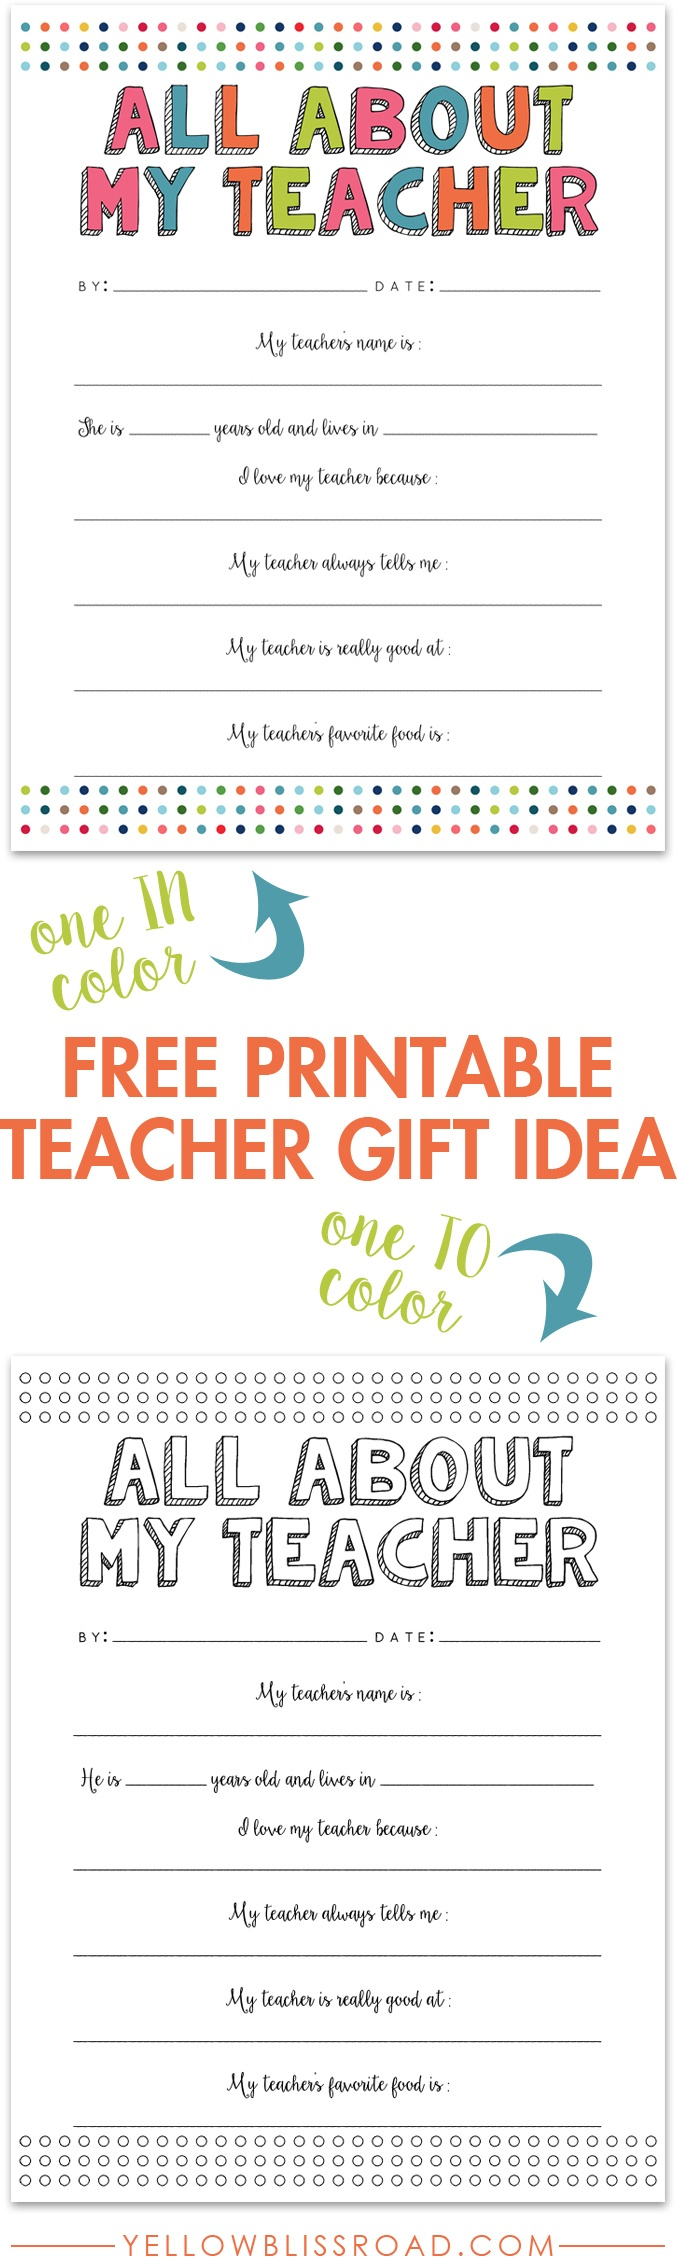 All About My Teacher Free Printable - Yellow Bliss Road - All About My Teacher Free Printable